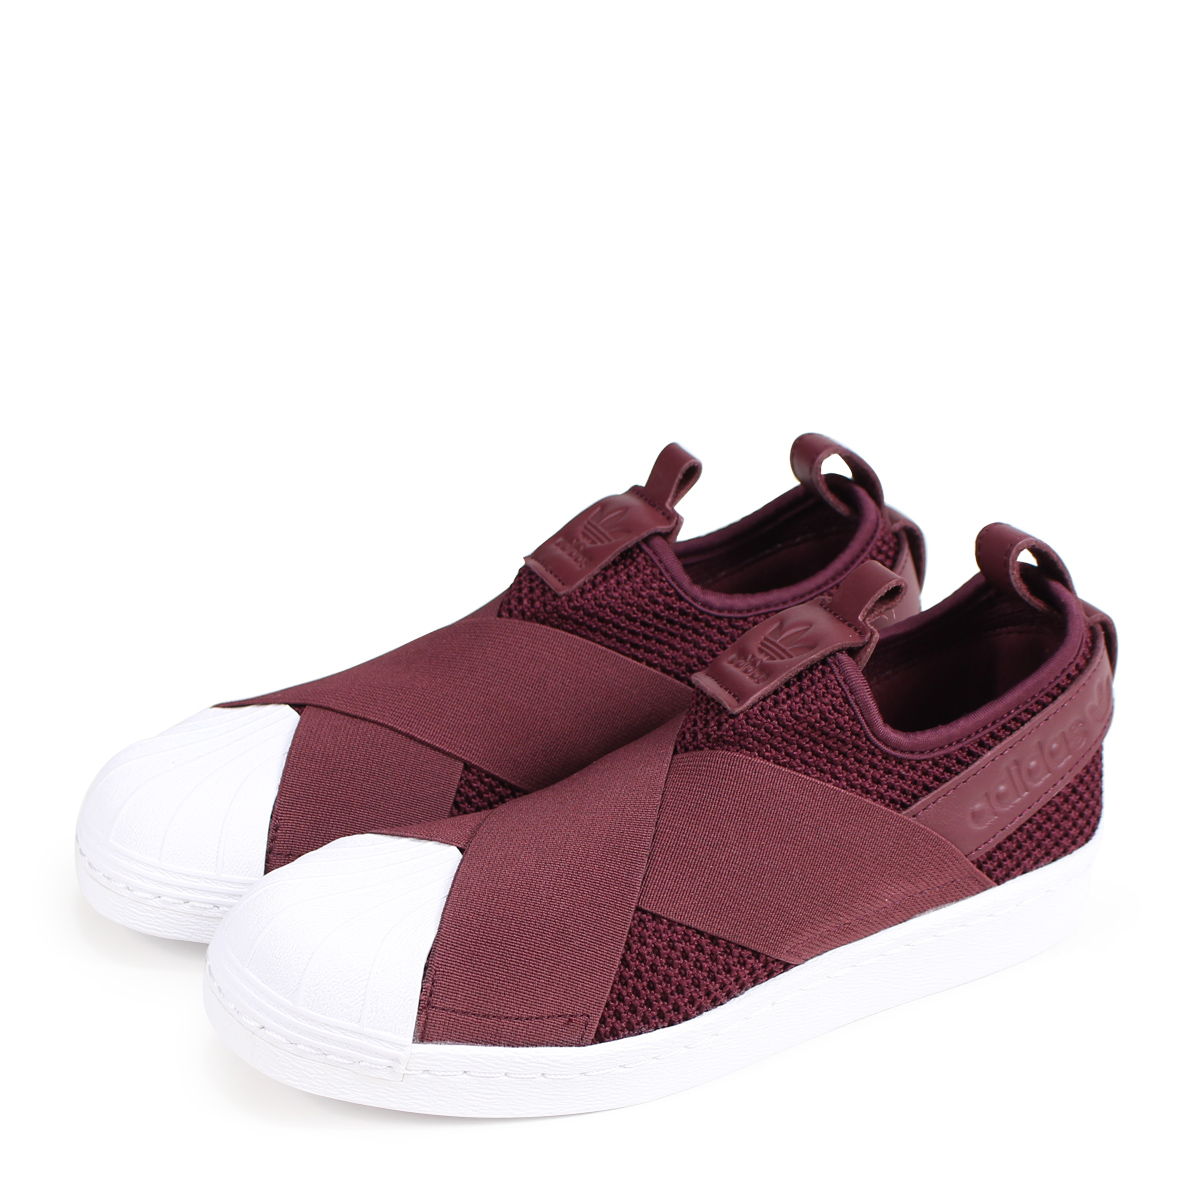 adidas Originals SUPERSTAR SLIP-ON W Adidas originals superstar Lady's  sneakers slip-ons B37371 burgundy [189]